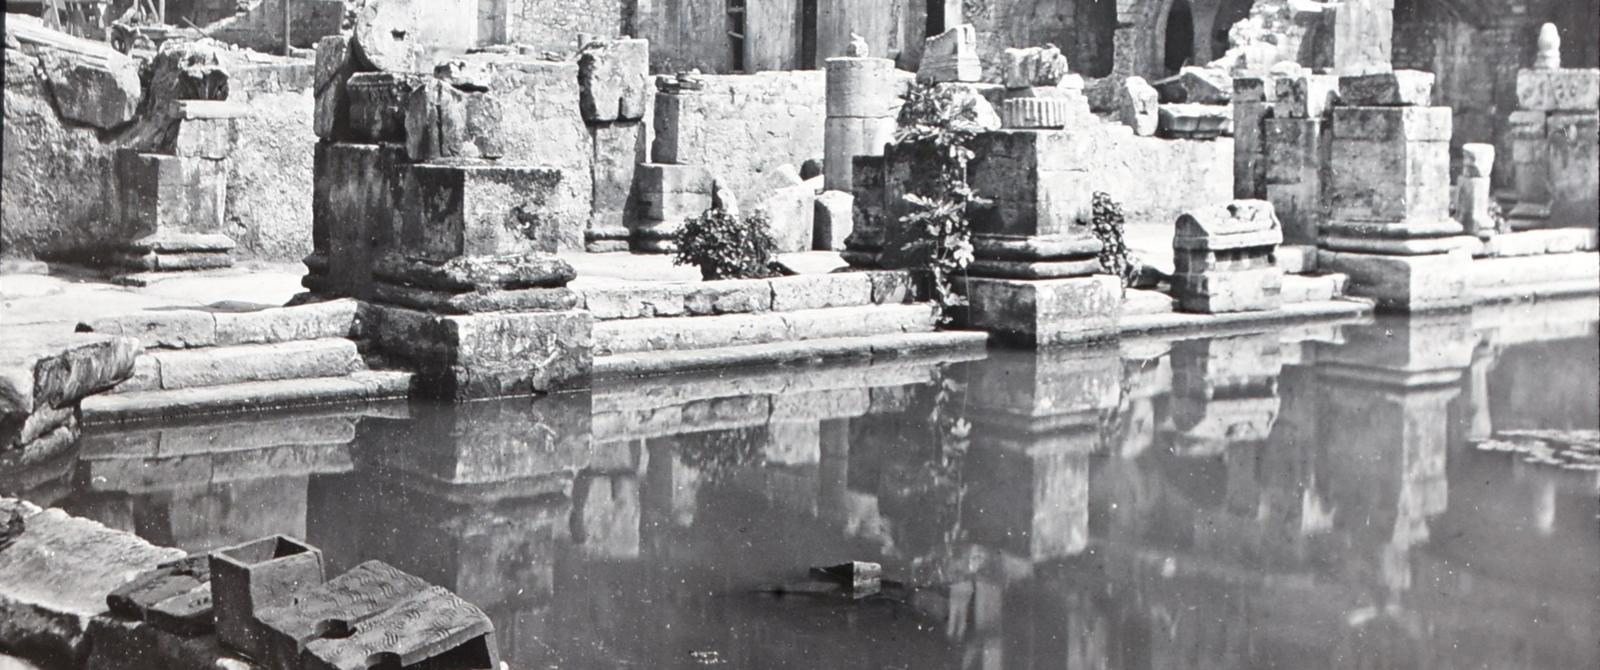 Glass slide of Great Bath shortly after its rediscovery